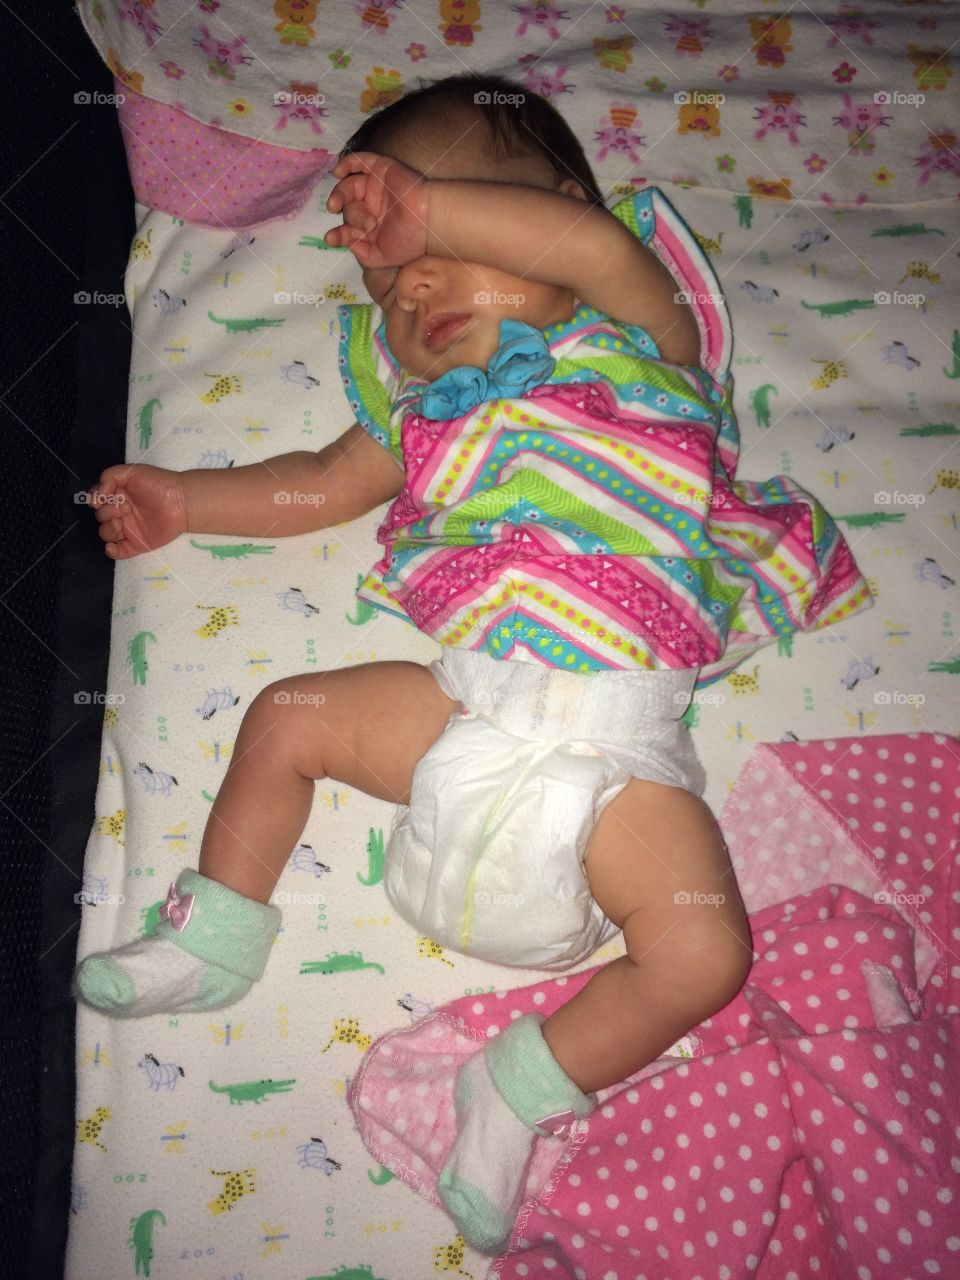 She had a rough day. It was so rough that she is dancing in her sleep. It isn't easy to be a preemie princess.